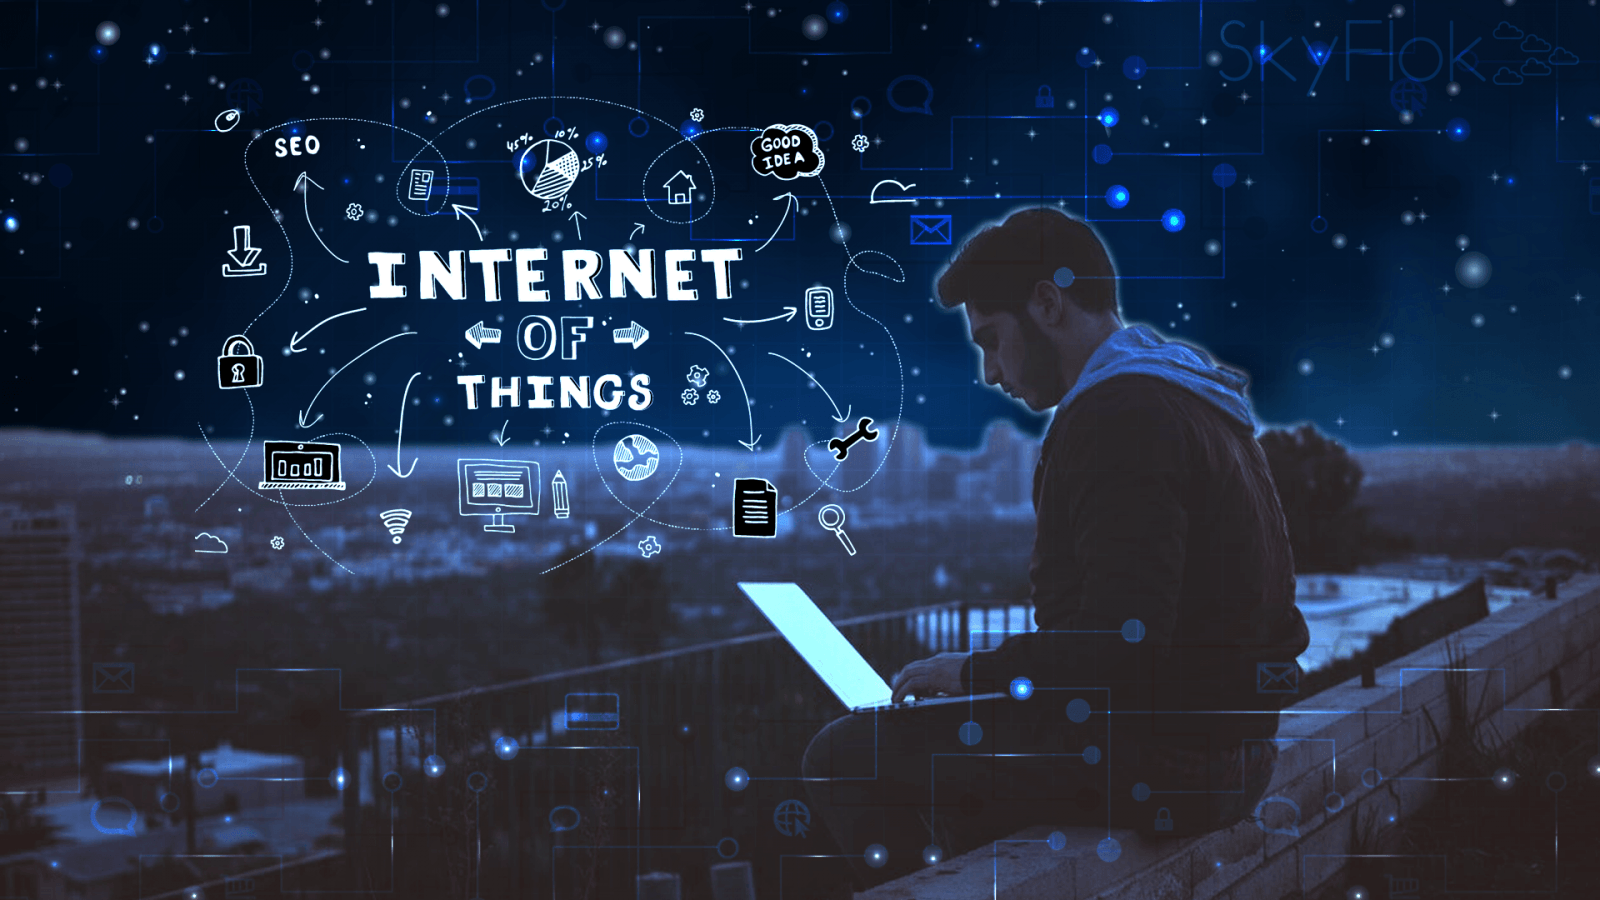 The Future Gen of Internet: IoT in Brief